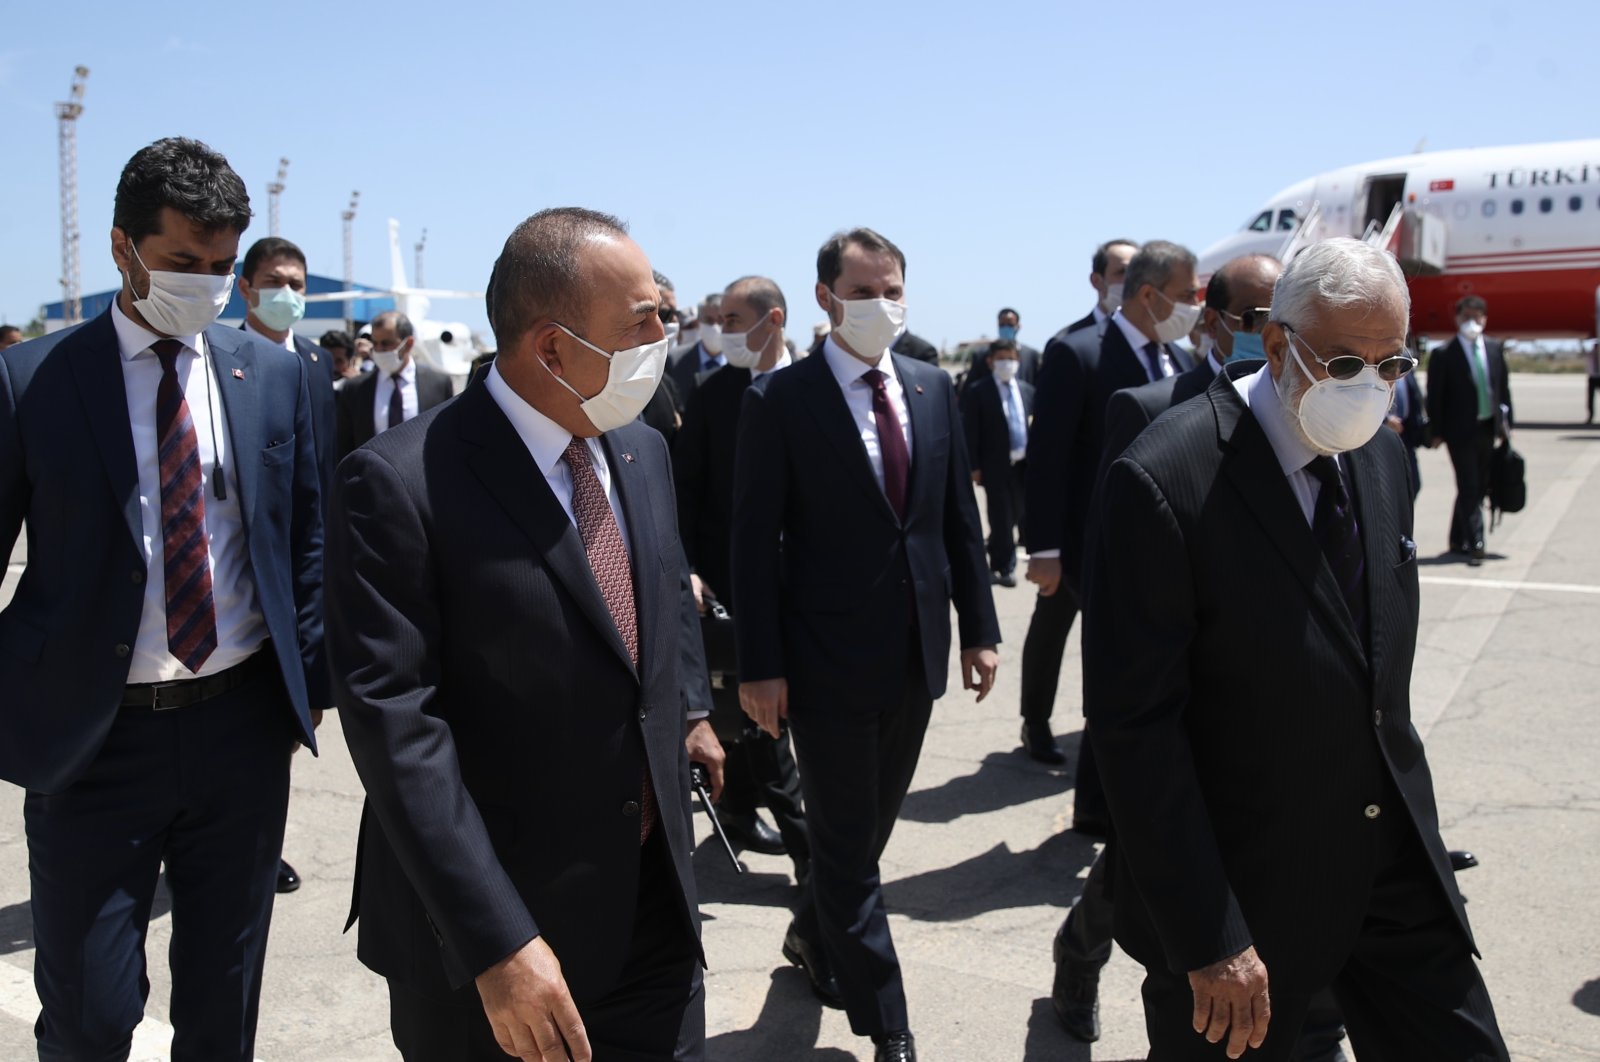 Turkey's Foreign Minister Mevlut Çavuşoğlu, left and Mohamed Taher Siala, Foreign Minister of Libya's internationally-recognized government, speak at the airport, in Tripoli, Libya, June 17, 2020. (Turkish Foreign Ministry via AA)